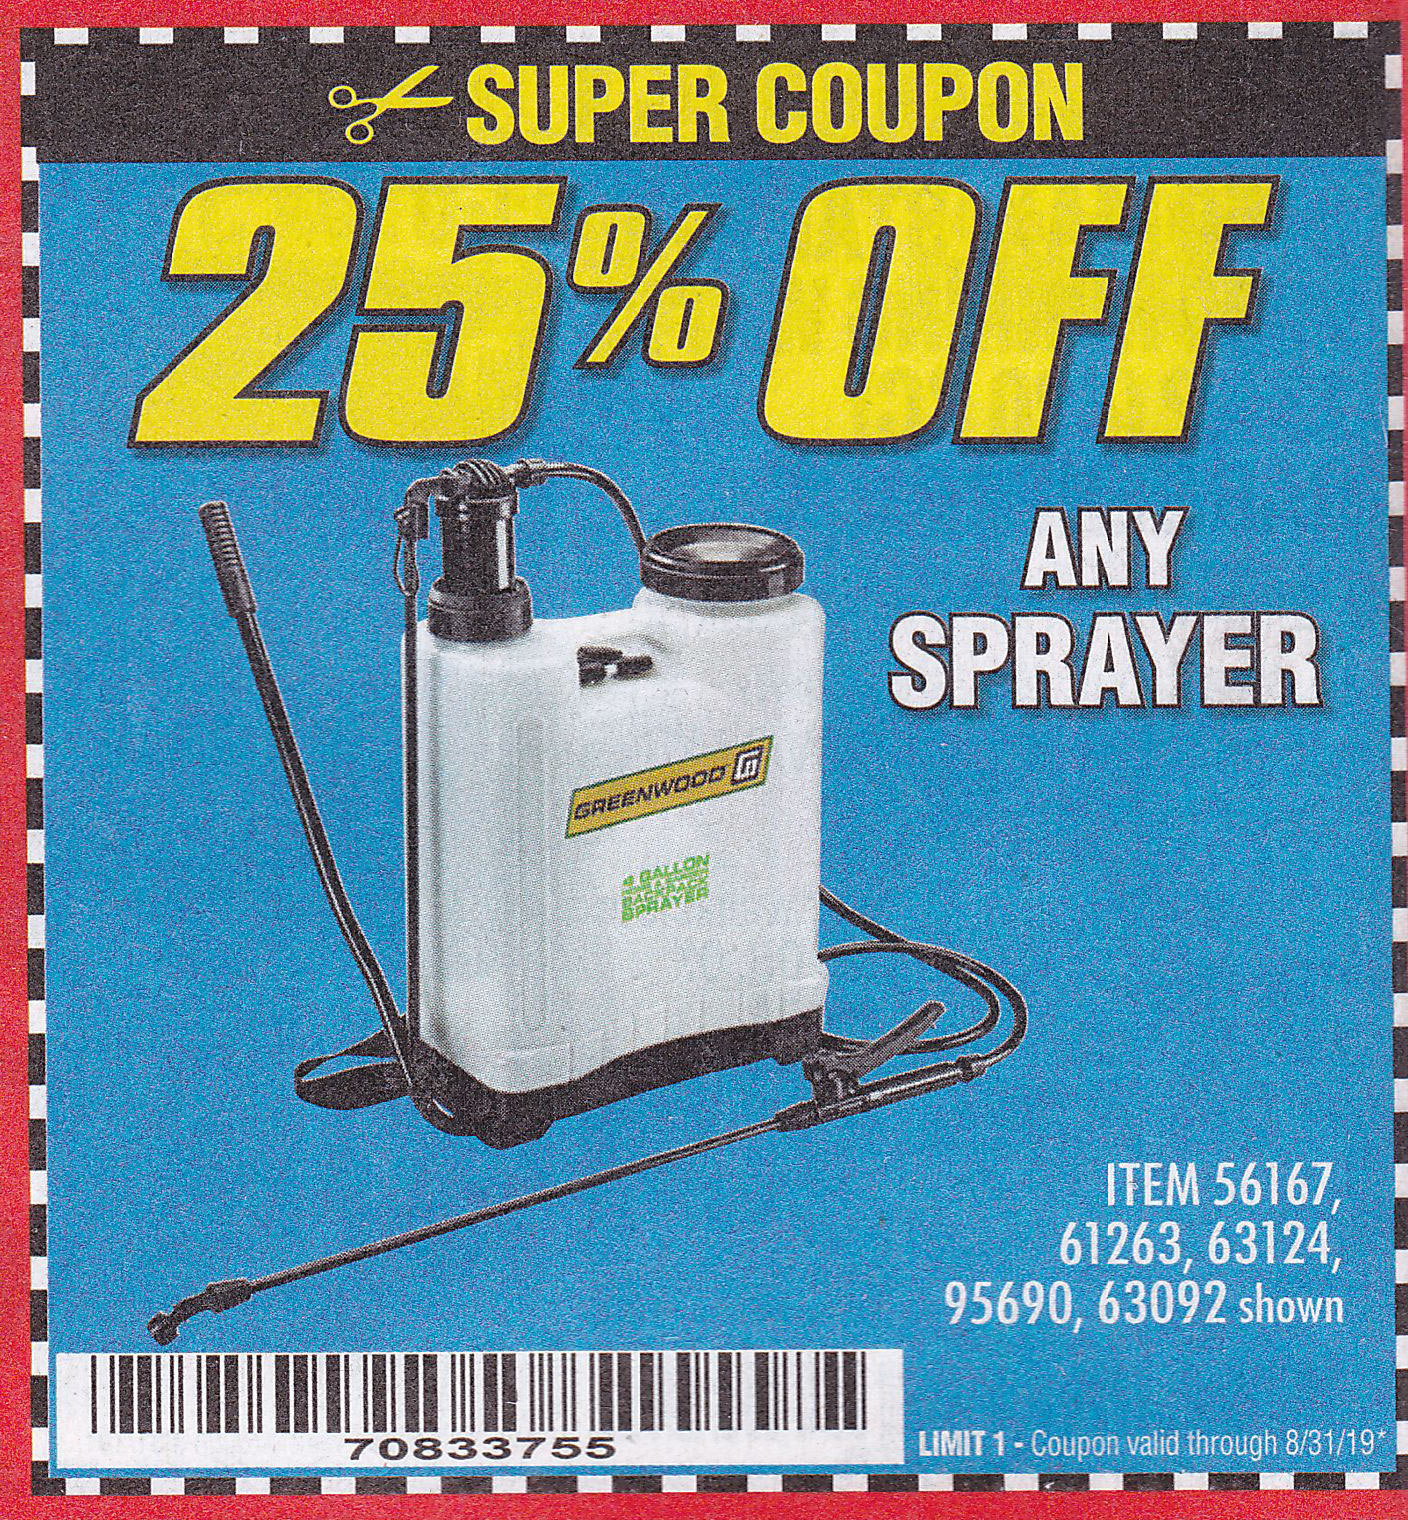 Harbor Freight 25PCT OFF ANY SPRAYER coupon